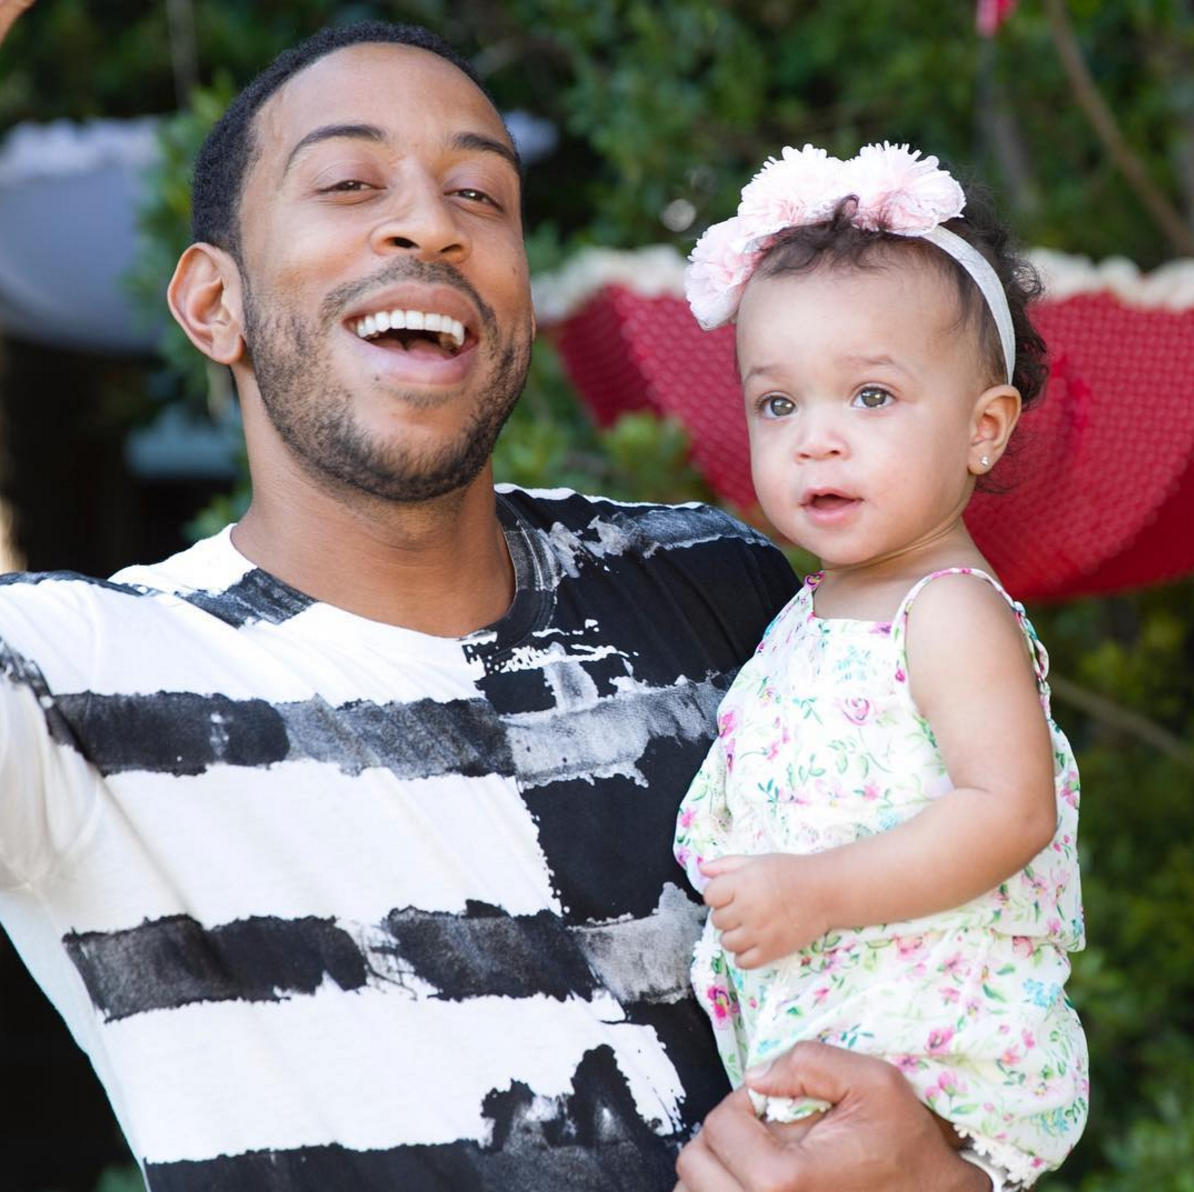 ludacris u0026 39  daughters cai and cadence are the cutest